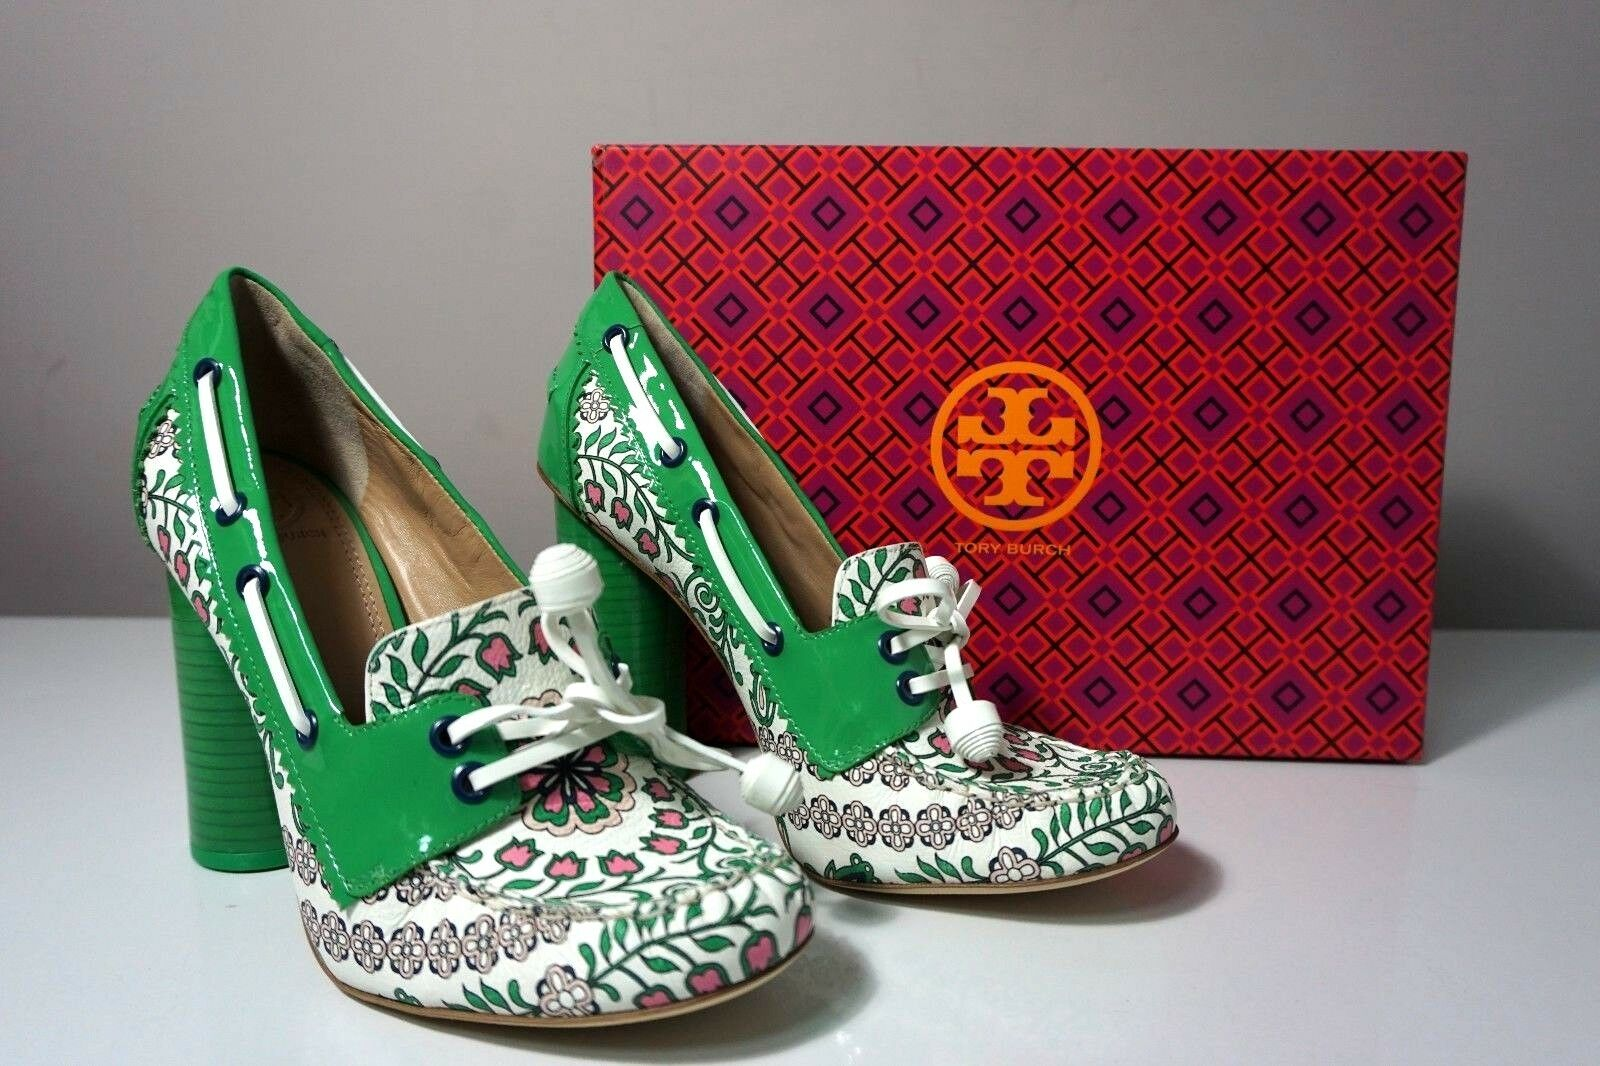 Tory Burch Garden Party Fisher 110mm Loafer Pump Size 8.5